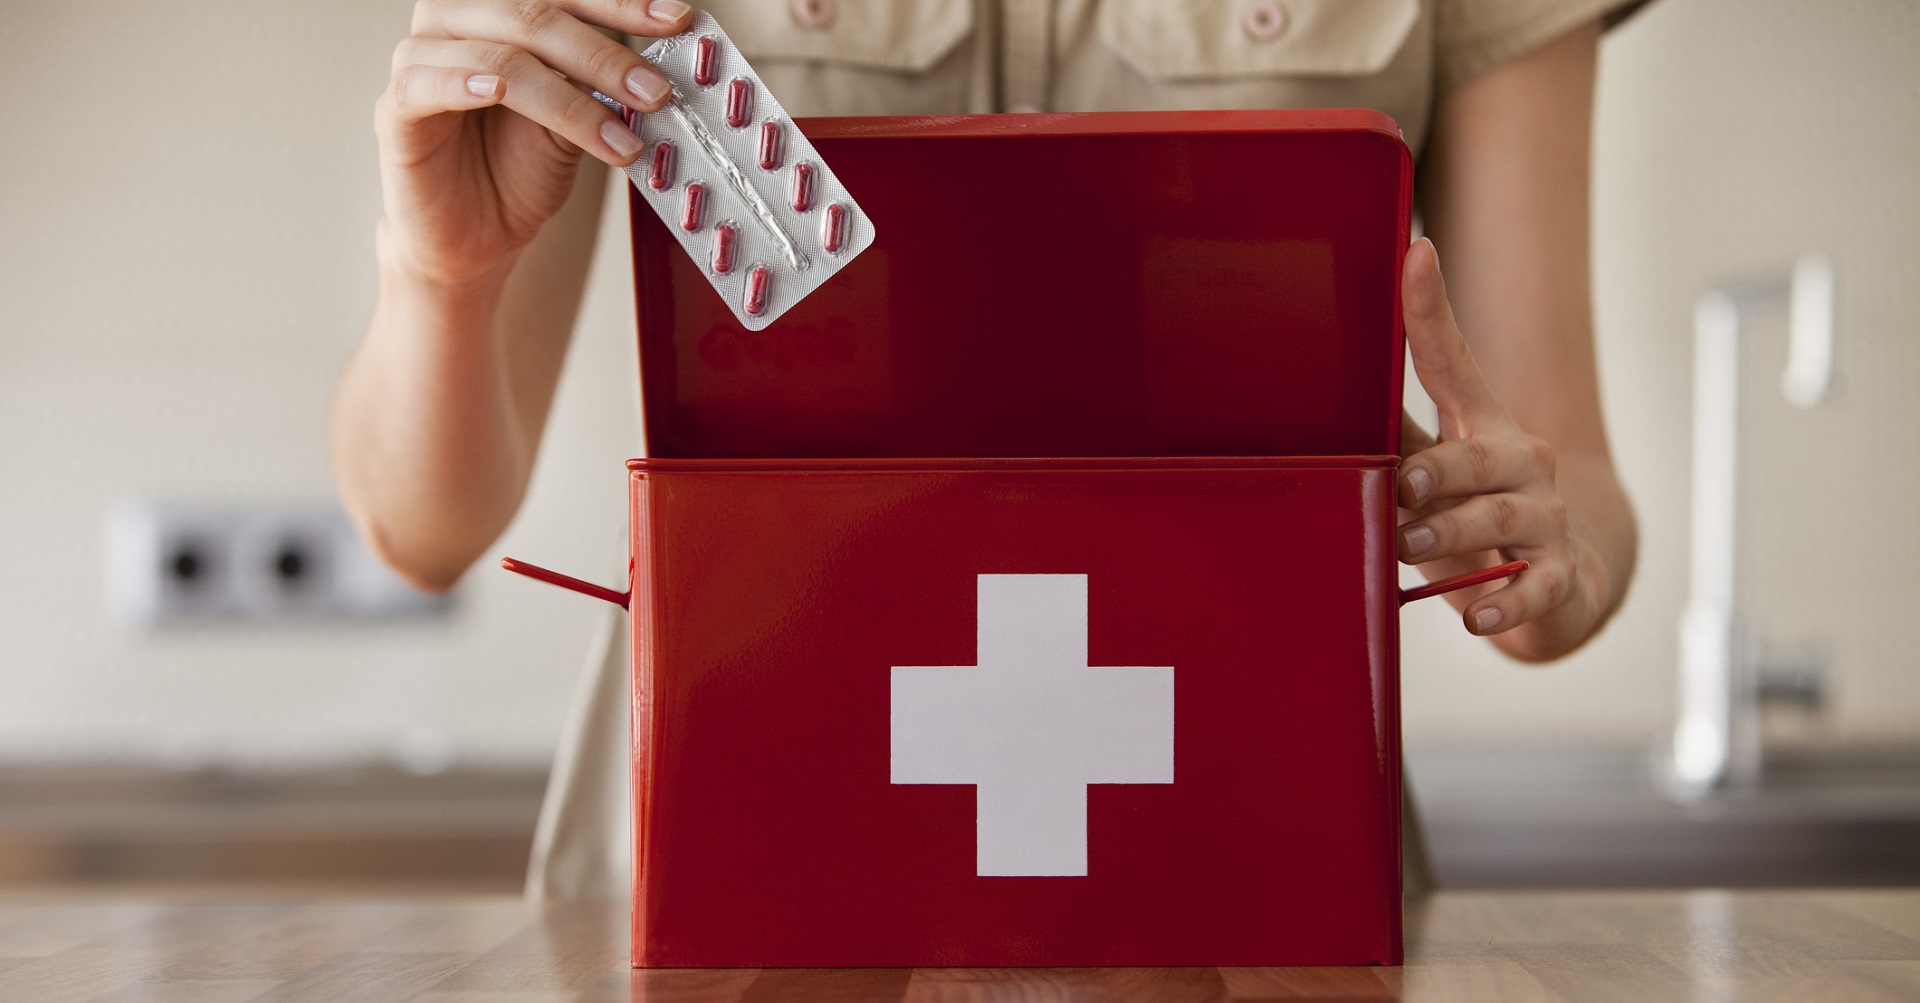 woman putting medicine into first aid kit